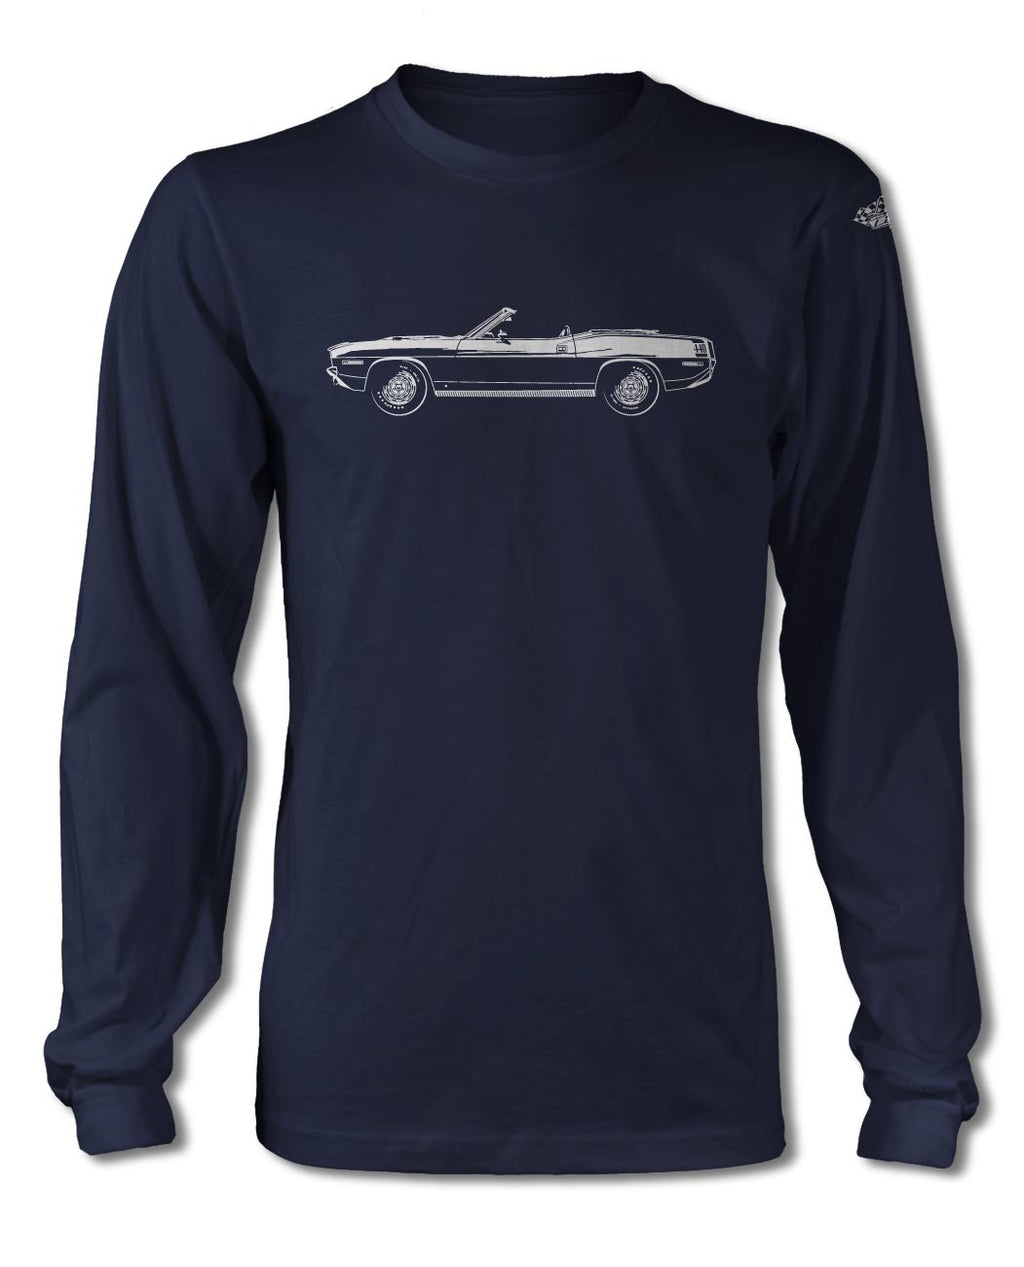 1970 Plymouth Barracuda 'Cuda 440 Convertible T-Shirt - Long Sleeve - Side View